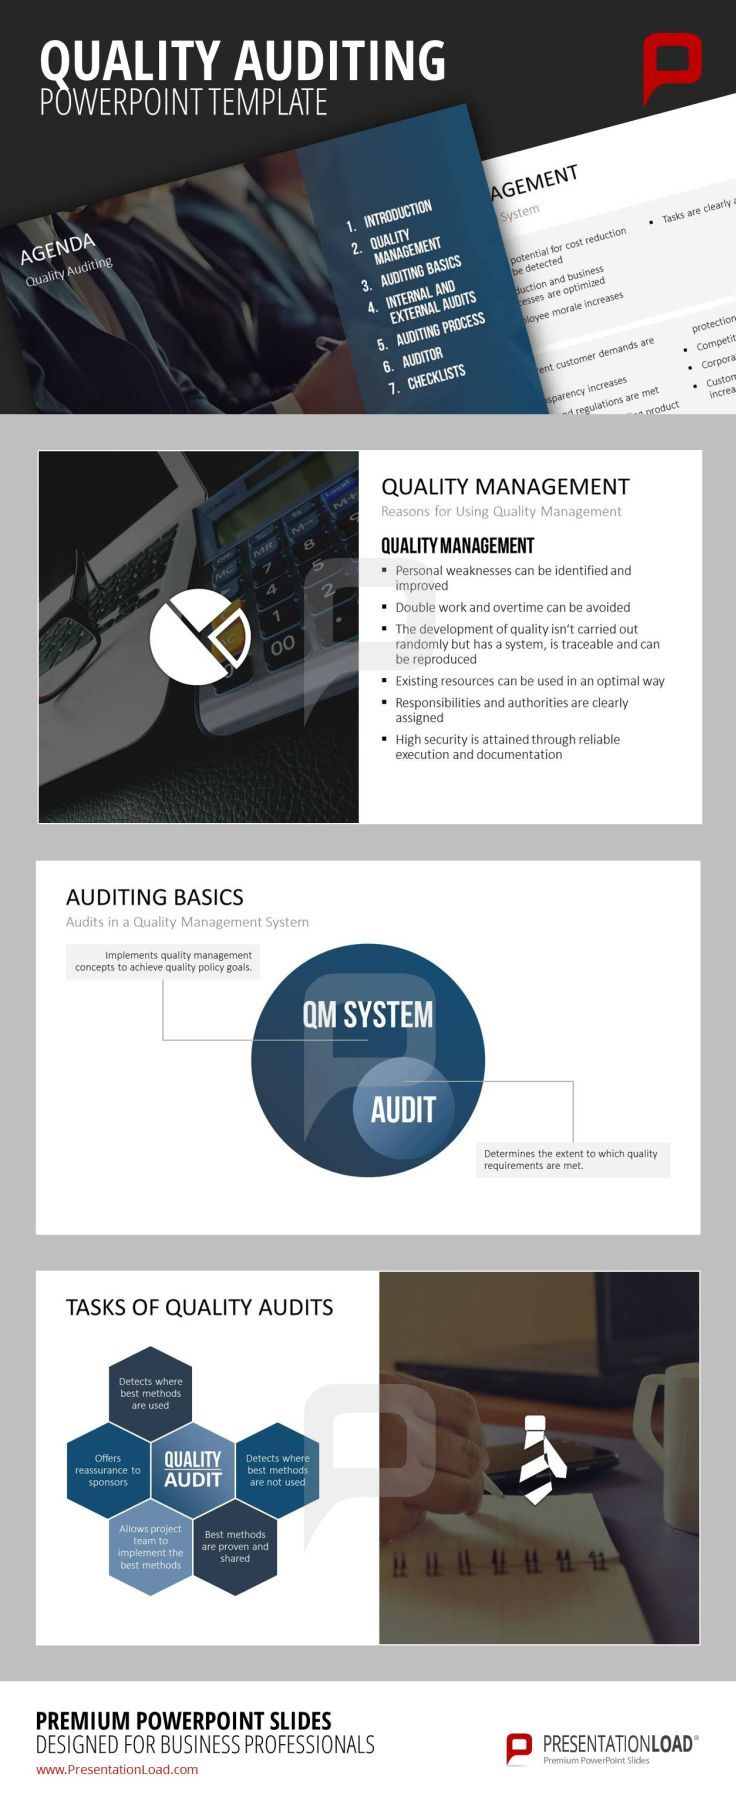 All information on how to perform quality audits can be found in our all information on how to perform quality audits can be found in our powerpoint template toneelgroepblik